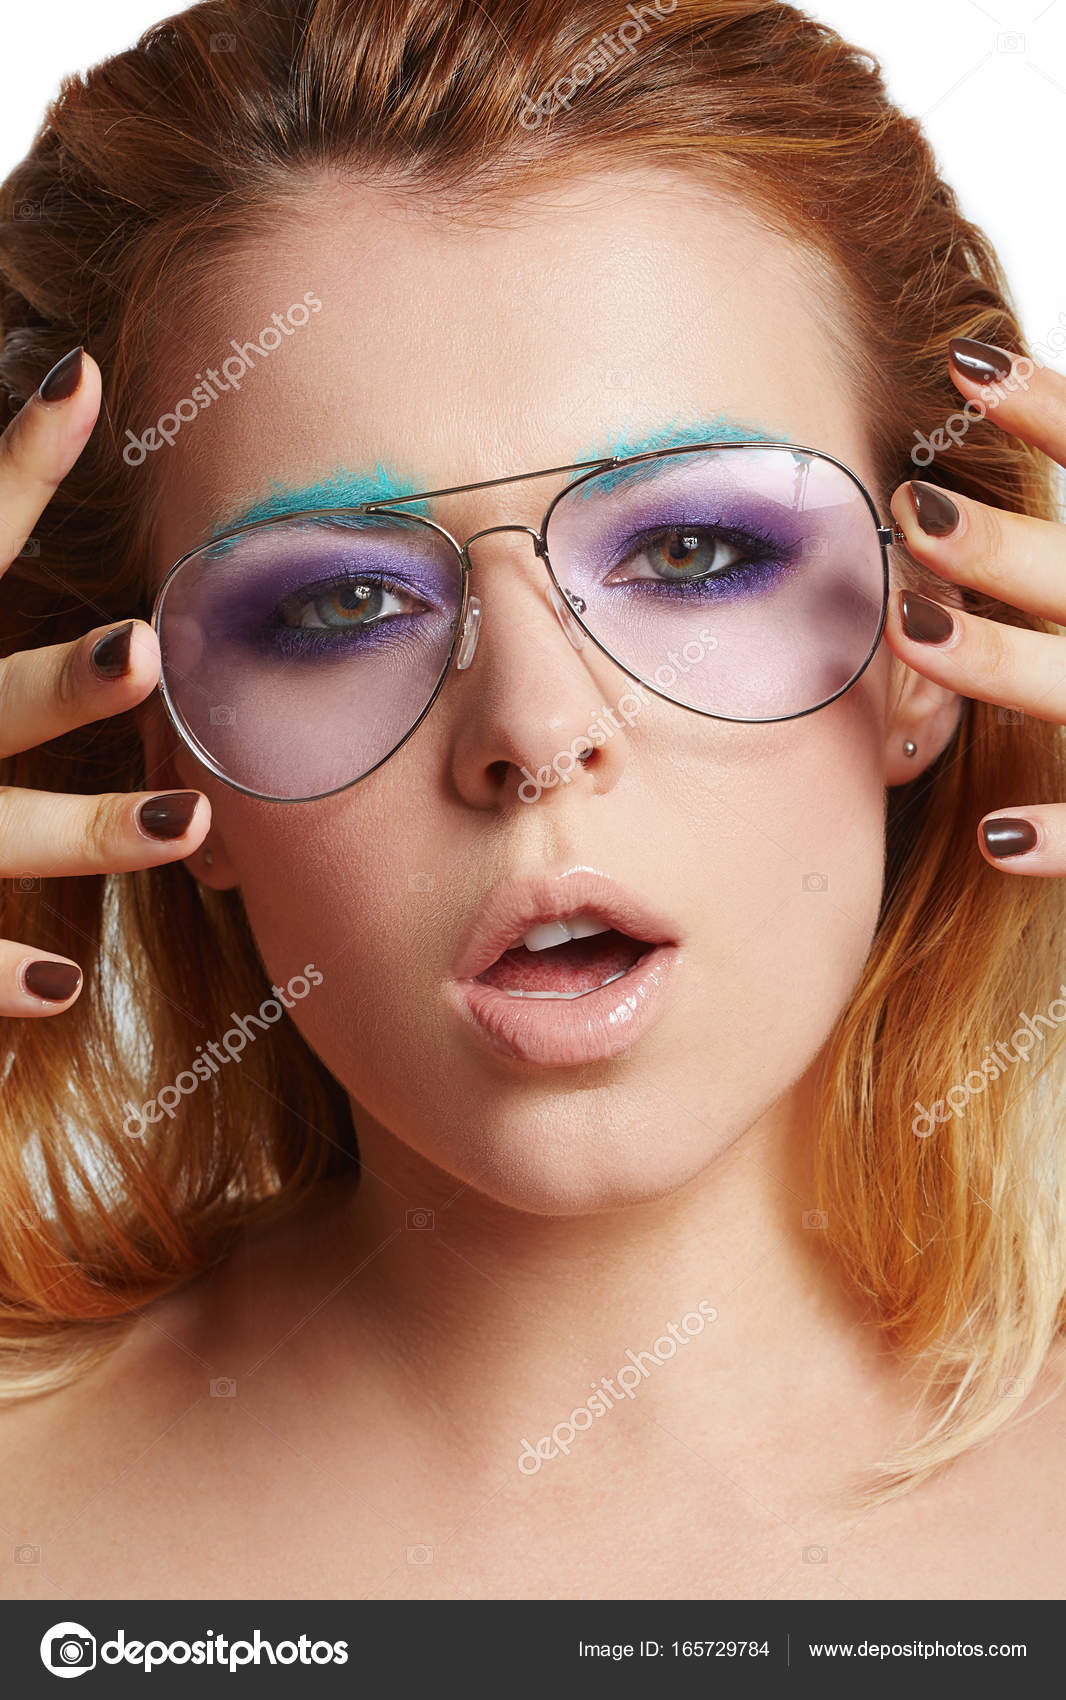 d0820367325 Beauty Fashion model girl wearing stylish glasses. Sexy woman portrait with  creative makeup and trendy fashion accessories. Beauty trends.